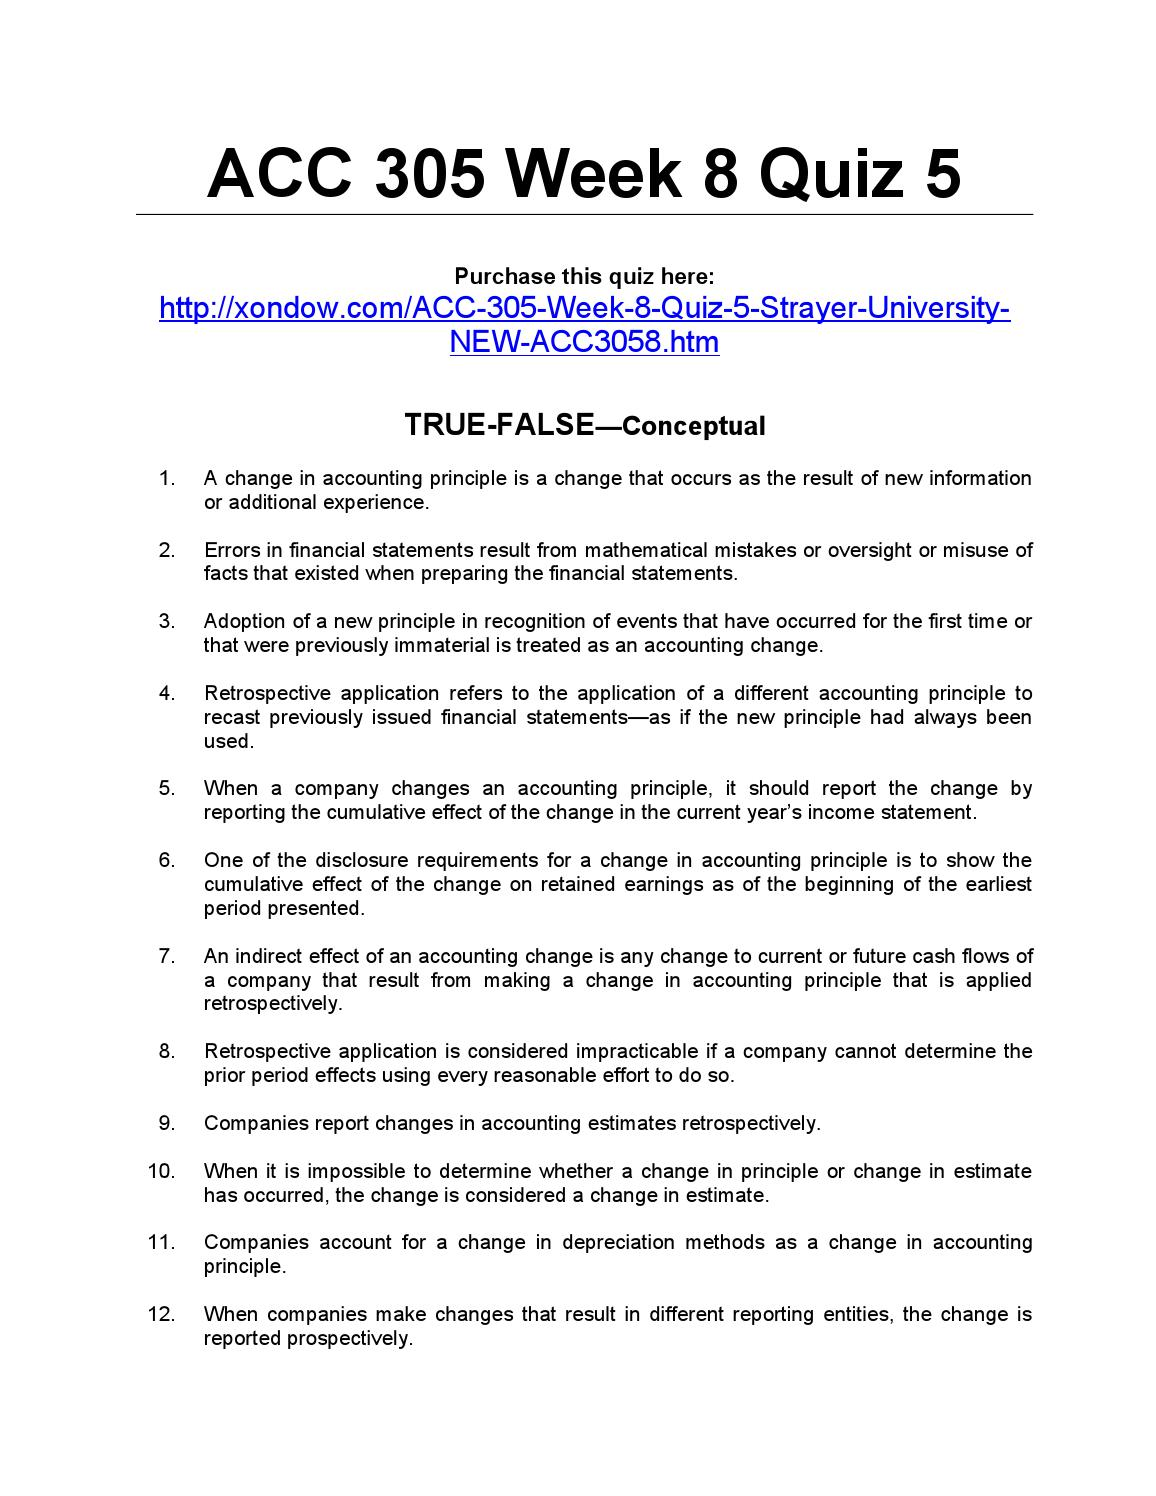 acc 563 week 6 assignment 2 strayer Acc 562 week 7 assignment 2 – strayer assignment 2: cardillo travel systems, inc due week 7 and worth 280 points review the cardillo travel systems case, located in chapter 6 of your textbook.